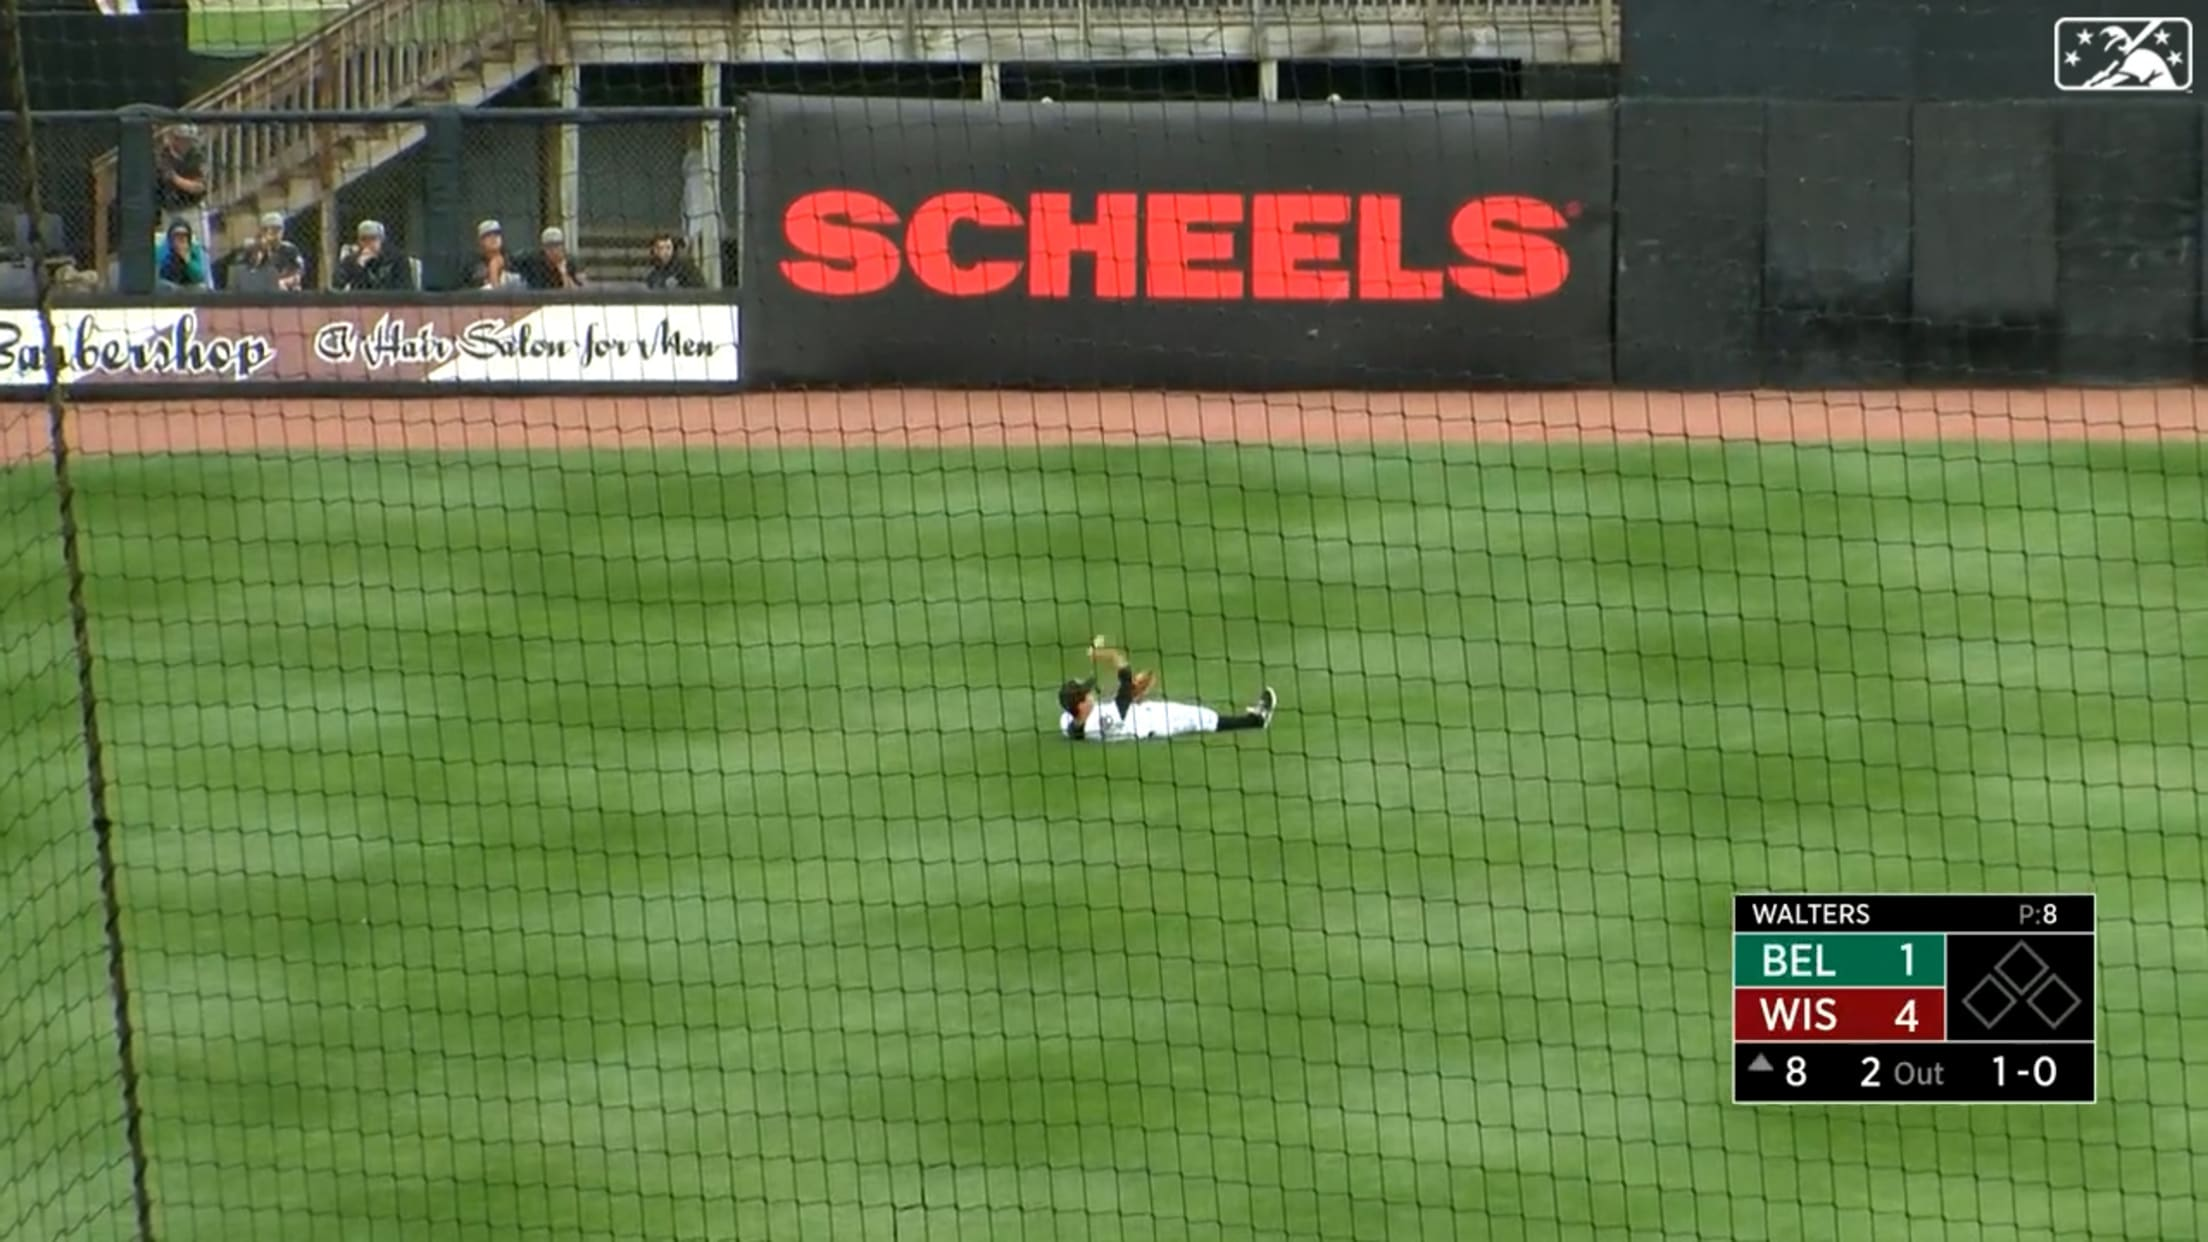 Frelick makes diving catch